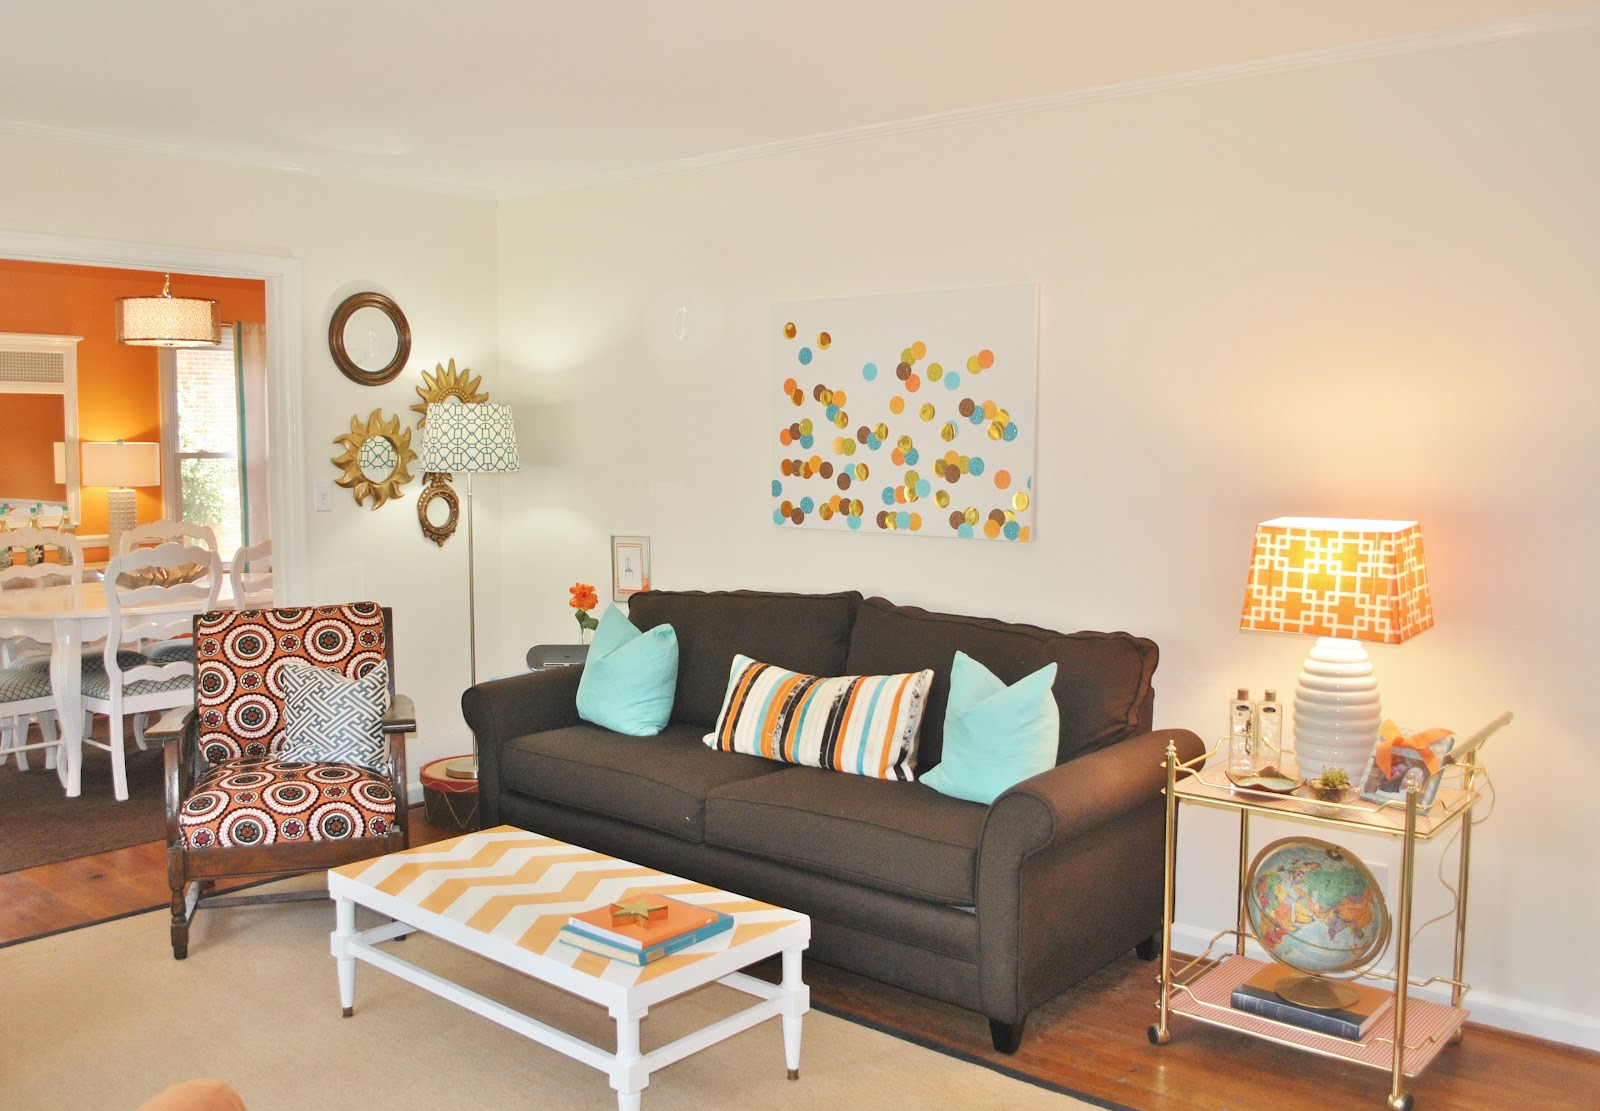 House Tour: Orange & Blue on Drake